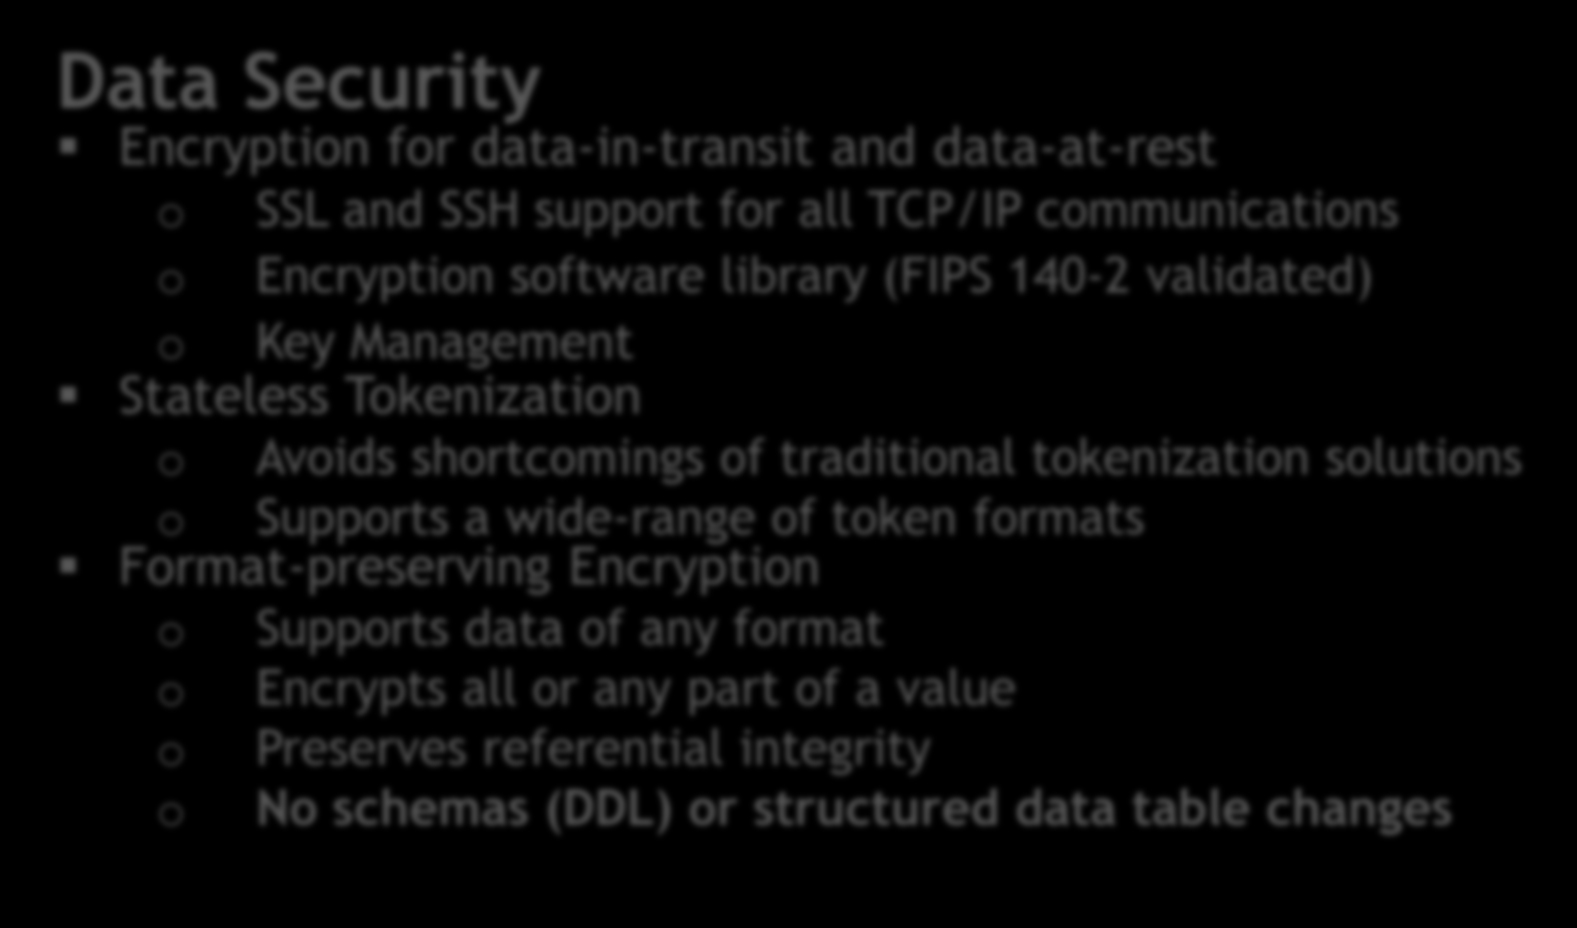 Data Security Encryption for data-in-transit and data-at-rest o SSL and SSH support for all TCP/IP communications o Encryption software library (FIPS 140-2 validated) o Key Management Stateless